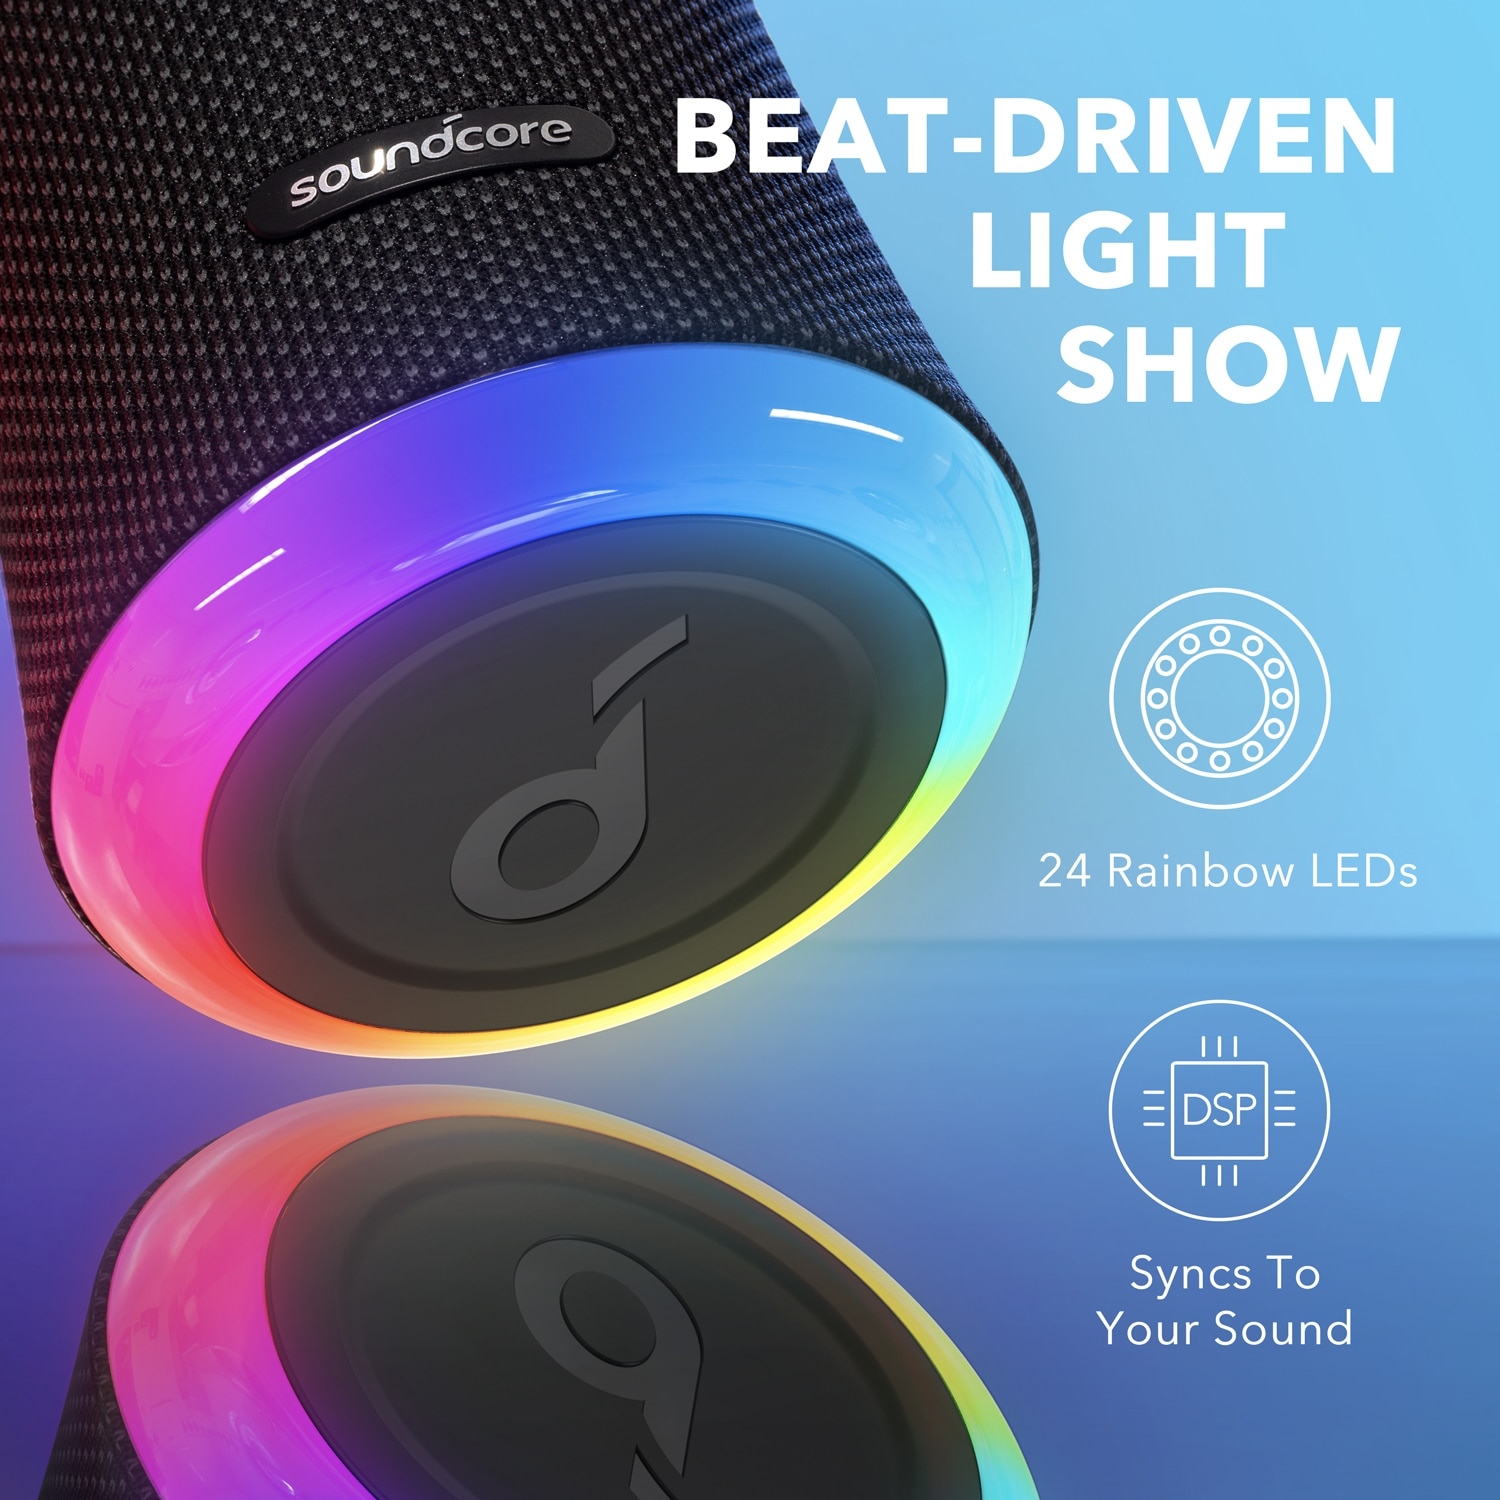 Anker Soundcore Flare 2 Bluetooth Speaker, with IPX7 Waterproof Protection and 360° Sound for Backyard and Beach Party, 20W Wire enlarge